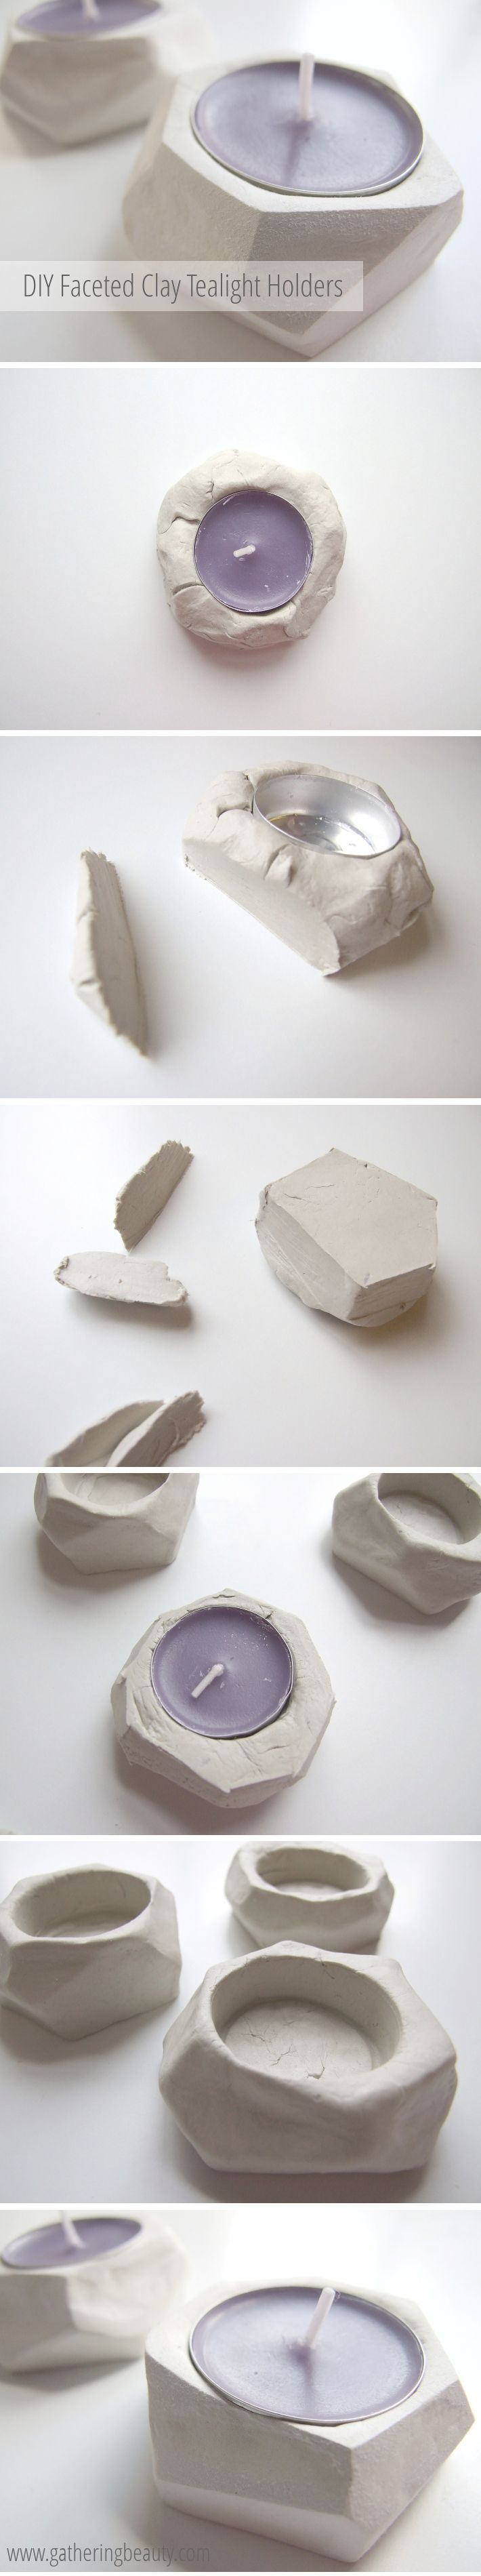 DIY Faceted Clay Tealight Holders - A Little Craft In Your Day http://www.alittlecraftinyourday.com/2015/04/27/diy-faceted-clay-tealight-holders/?utm_content=buffer6dbb7&utm_medium=social&utm_source=twitter.com&utm_campaign=buffer